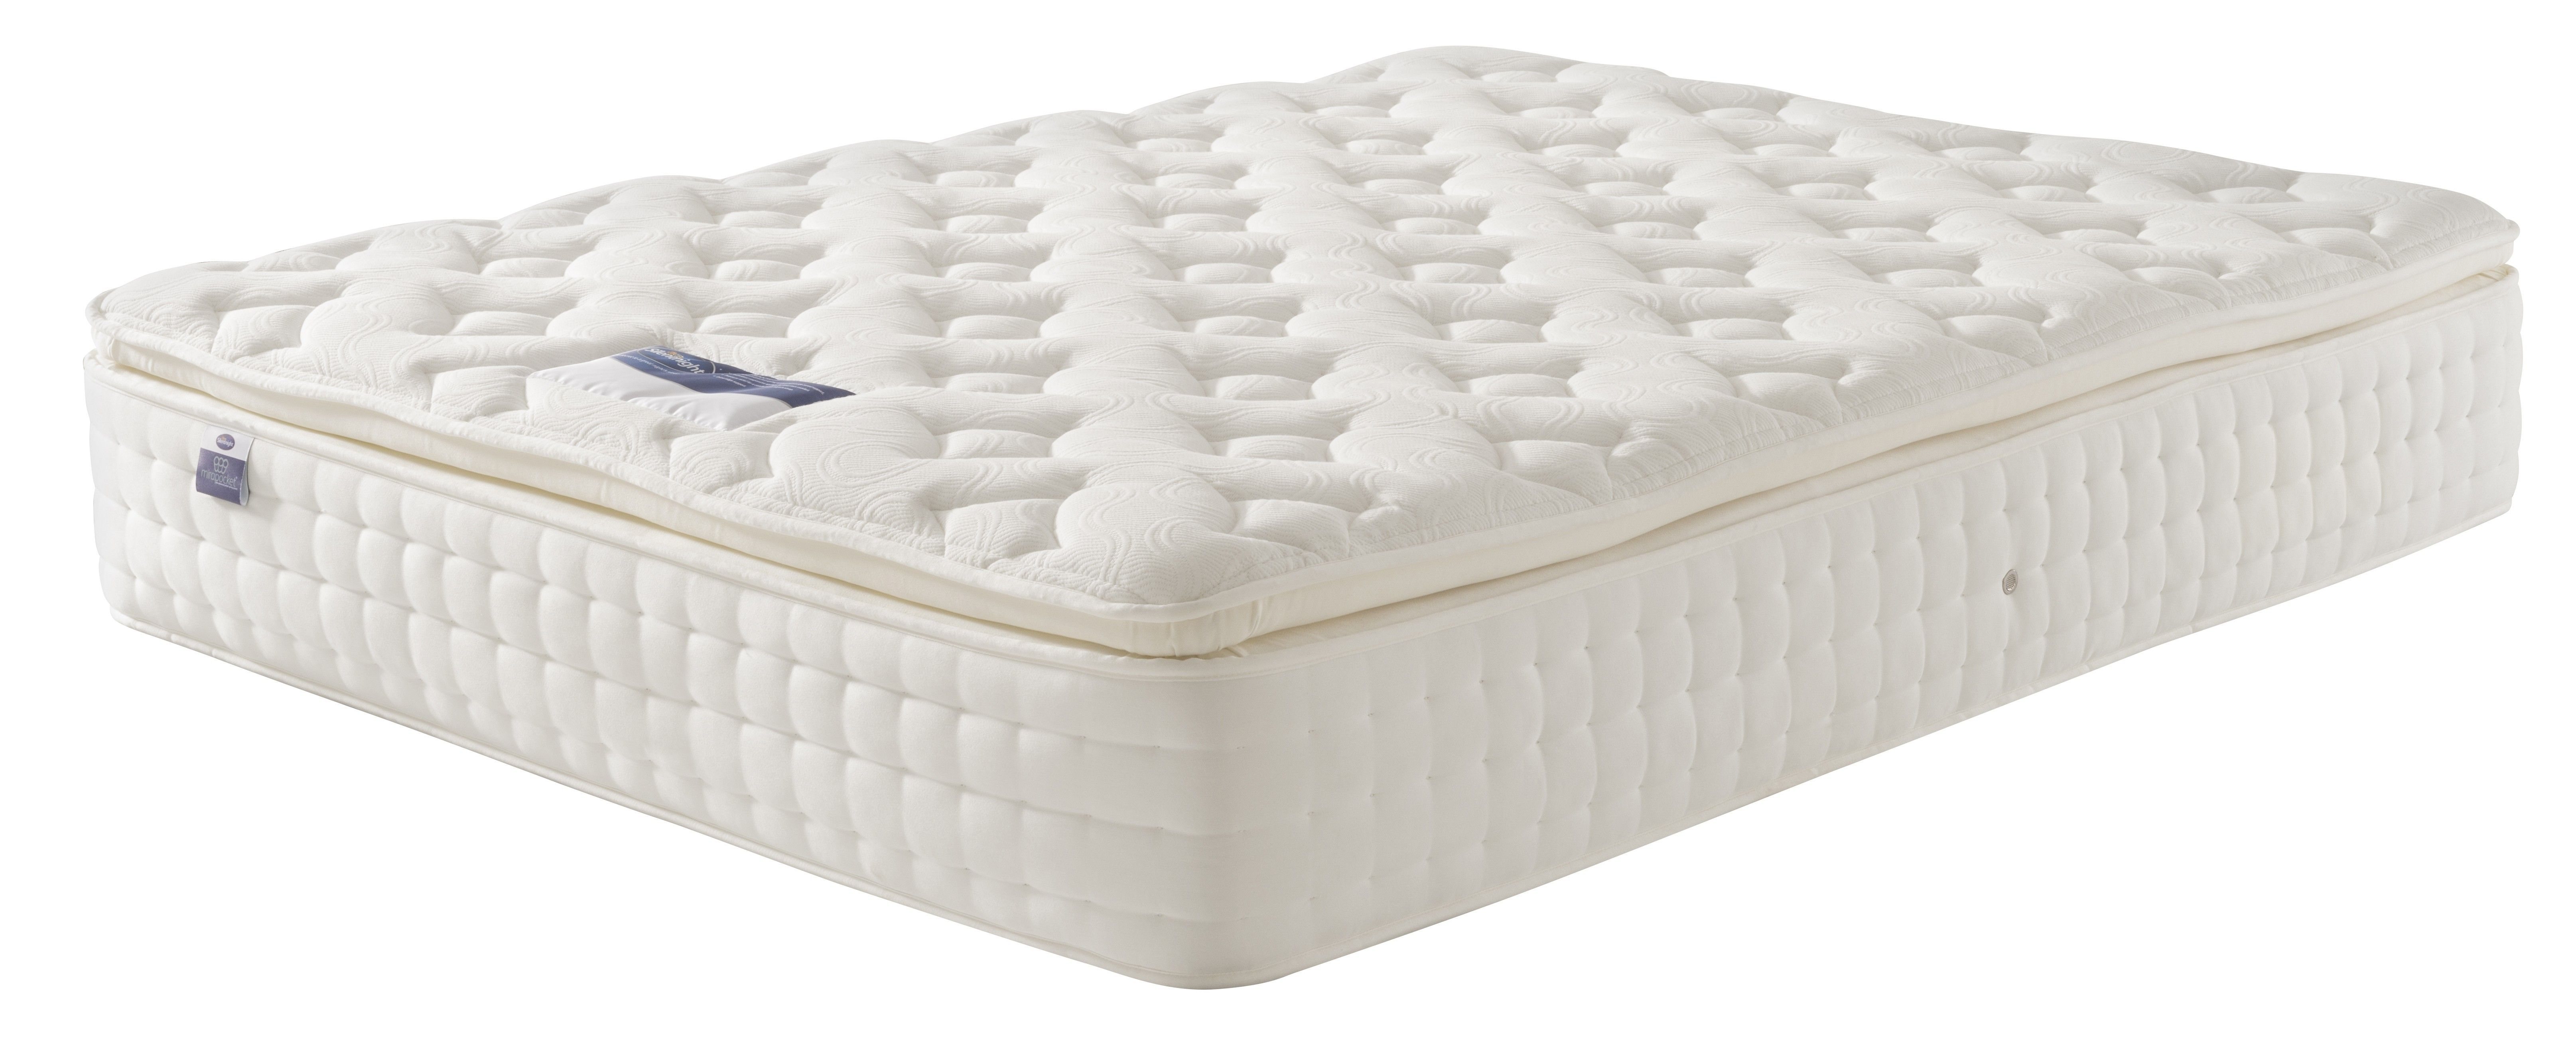 Mattresses are the key to a sound sleep. If you're not